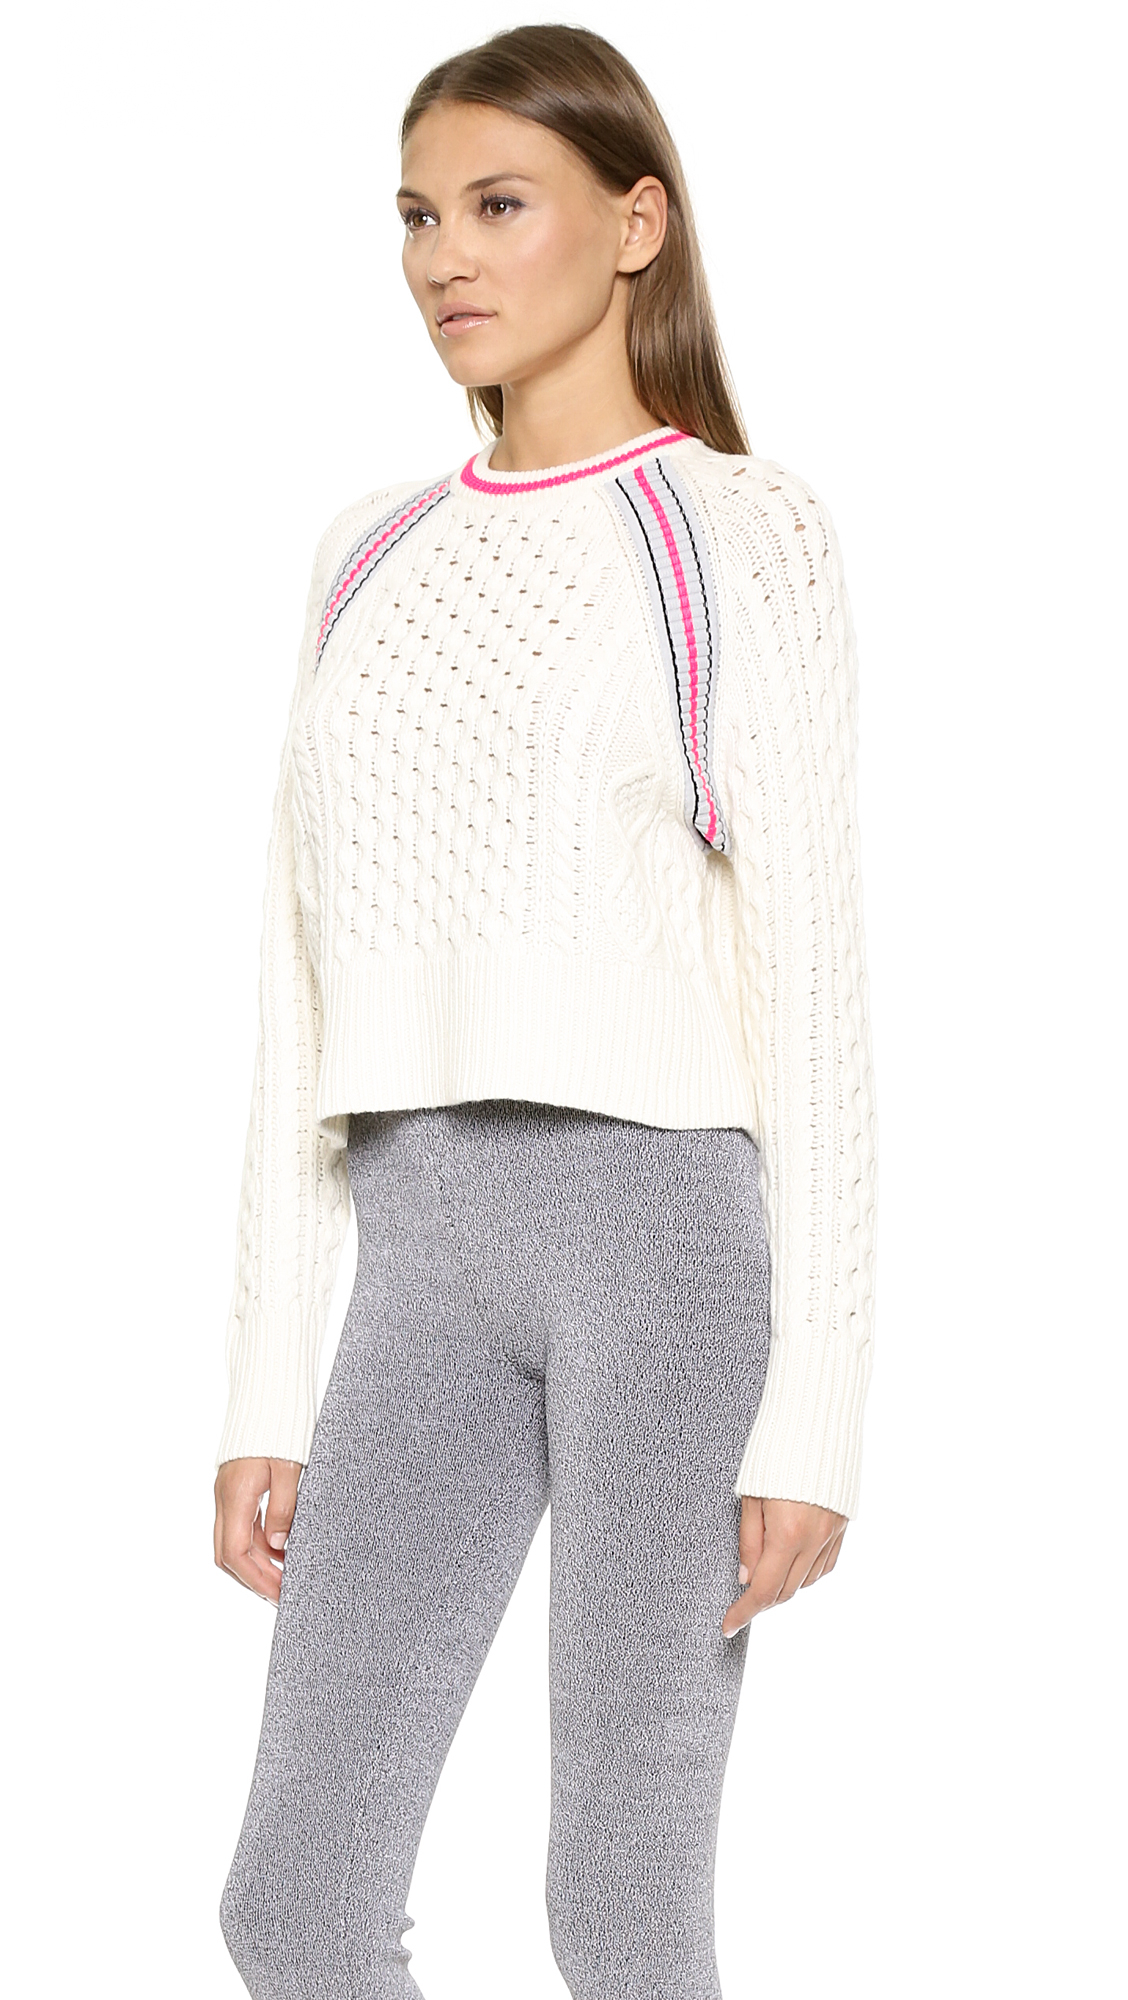 T by alexander wang Aran Knit Crop Pullover - Black in White (Ivory) Lyst